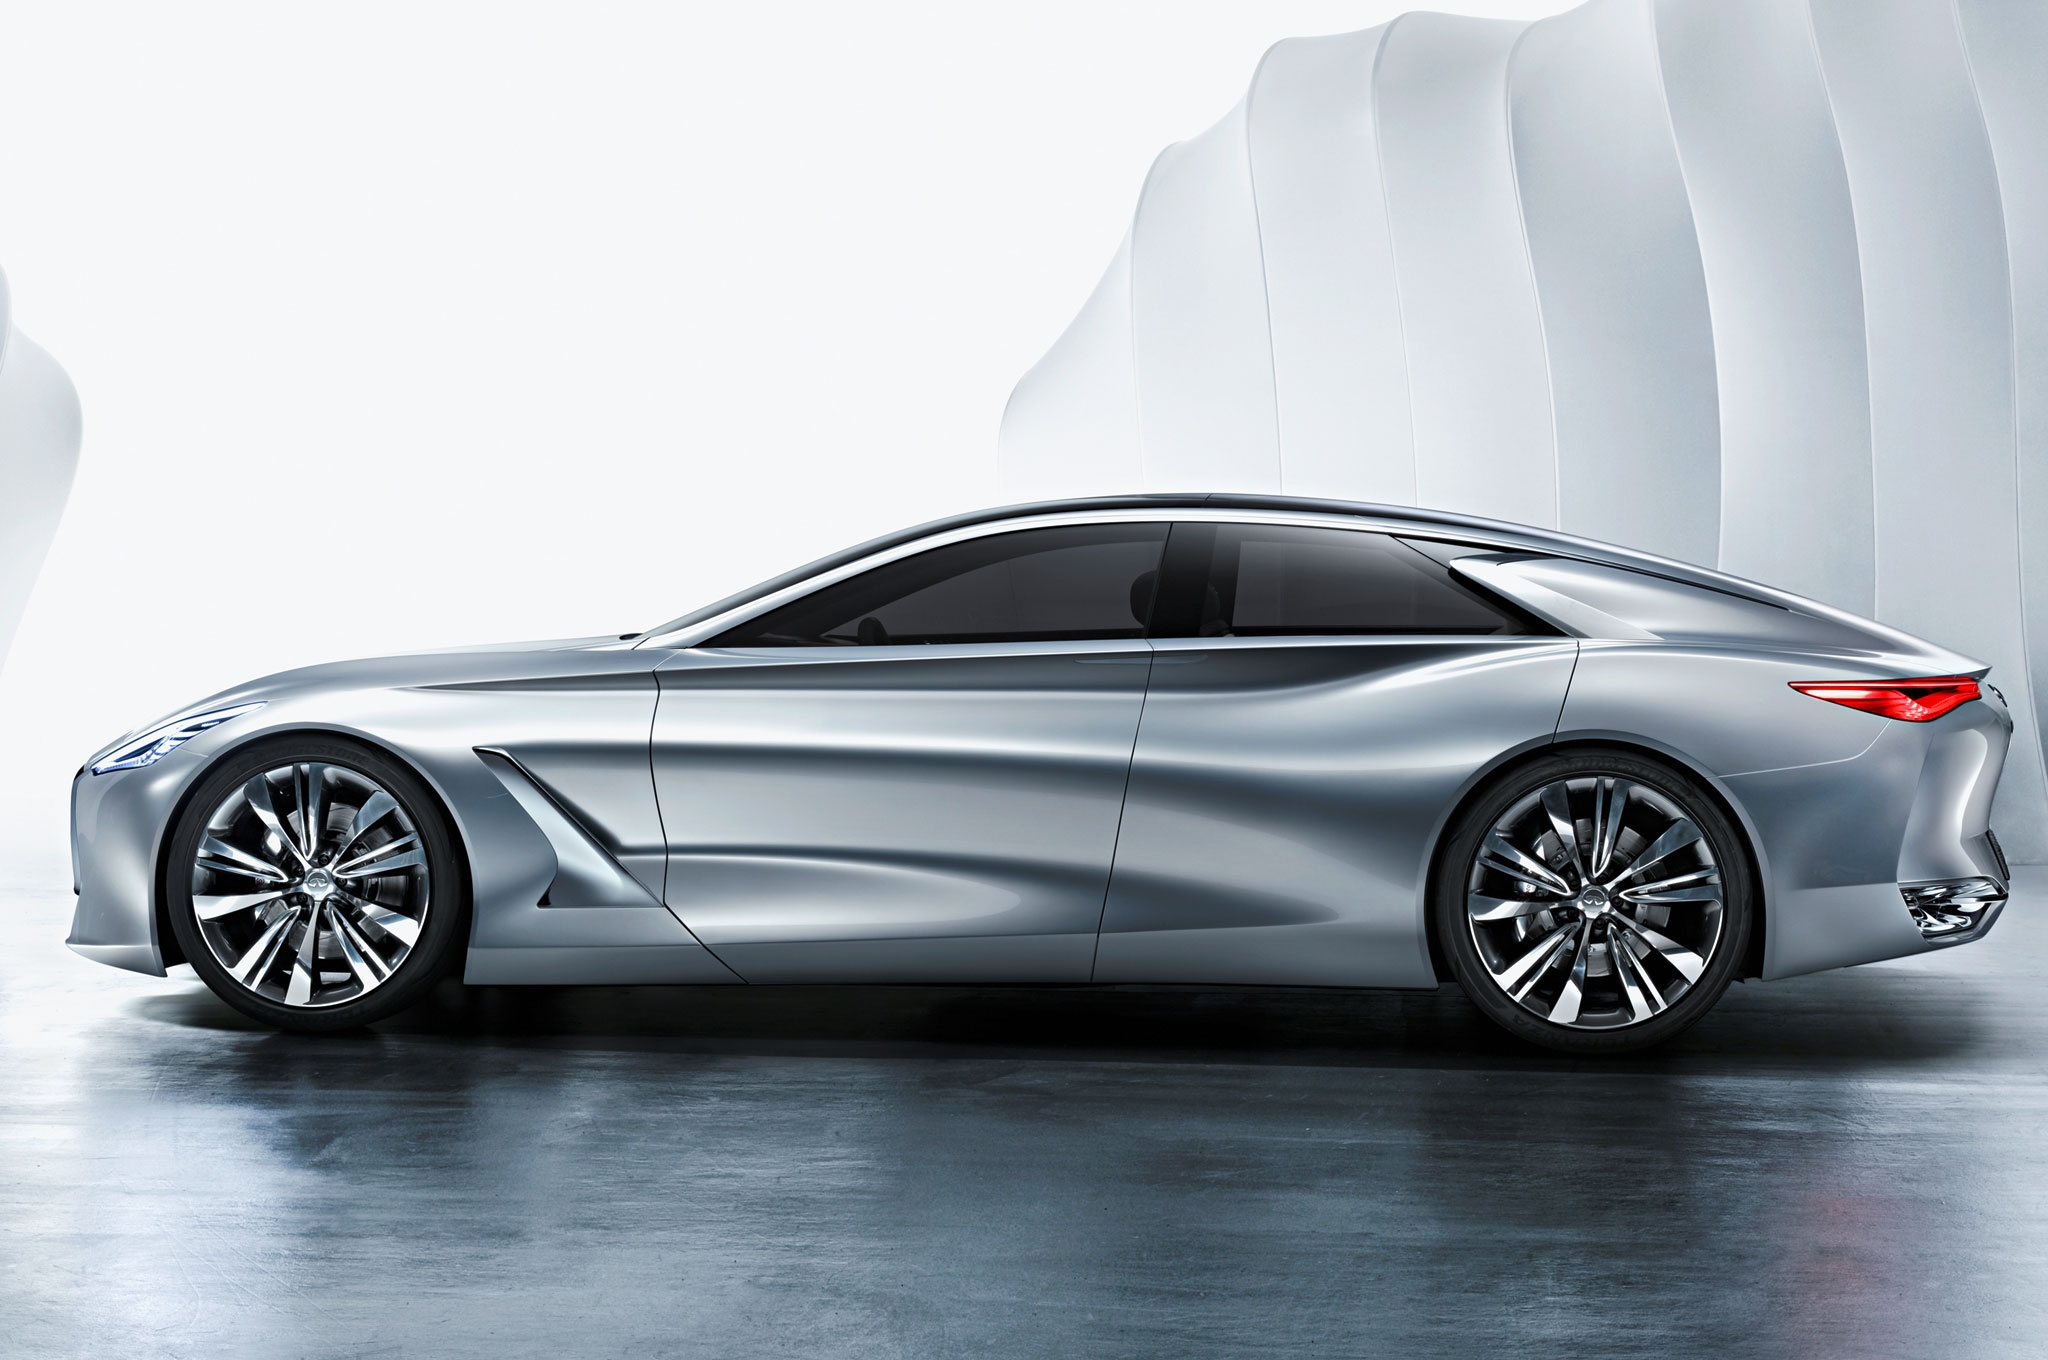 Infiniti Q80 Inspiration Concept Wallpapers HD Free Download